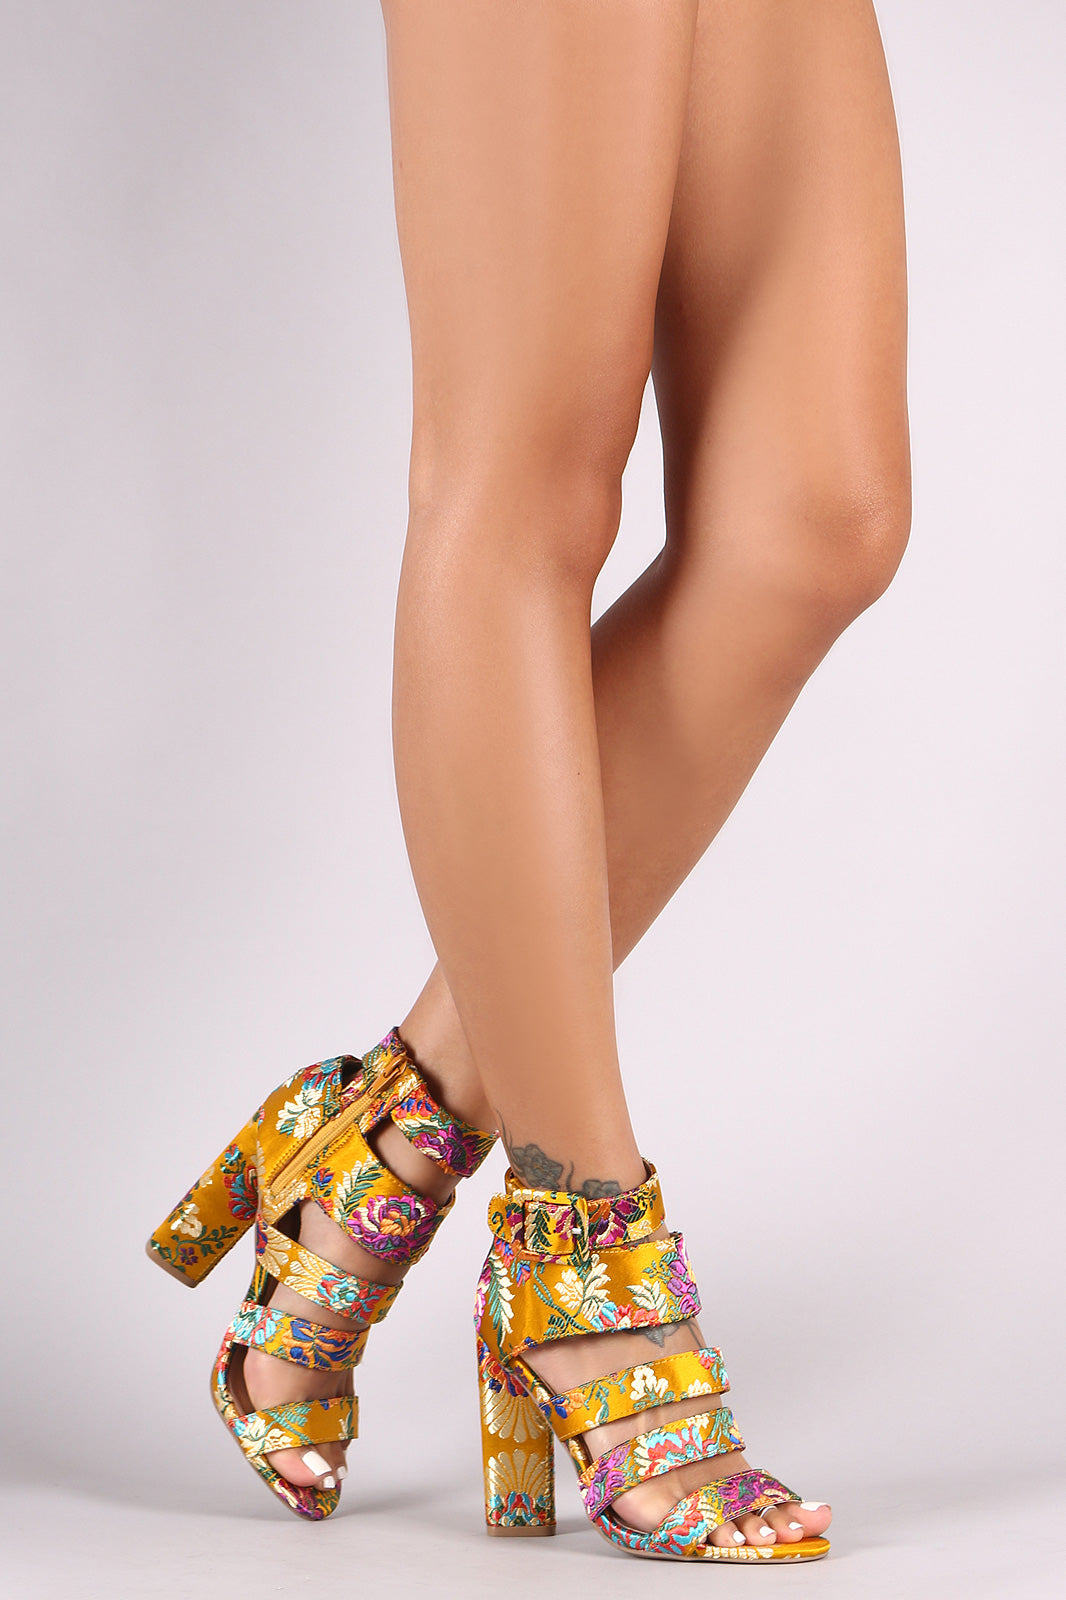 ba8ed26ce78 ... Qupid Floral Brocade Caged Chunky Heel Shoes Heels ...